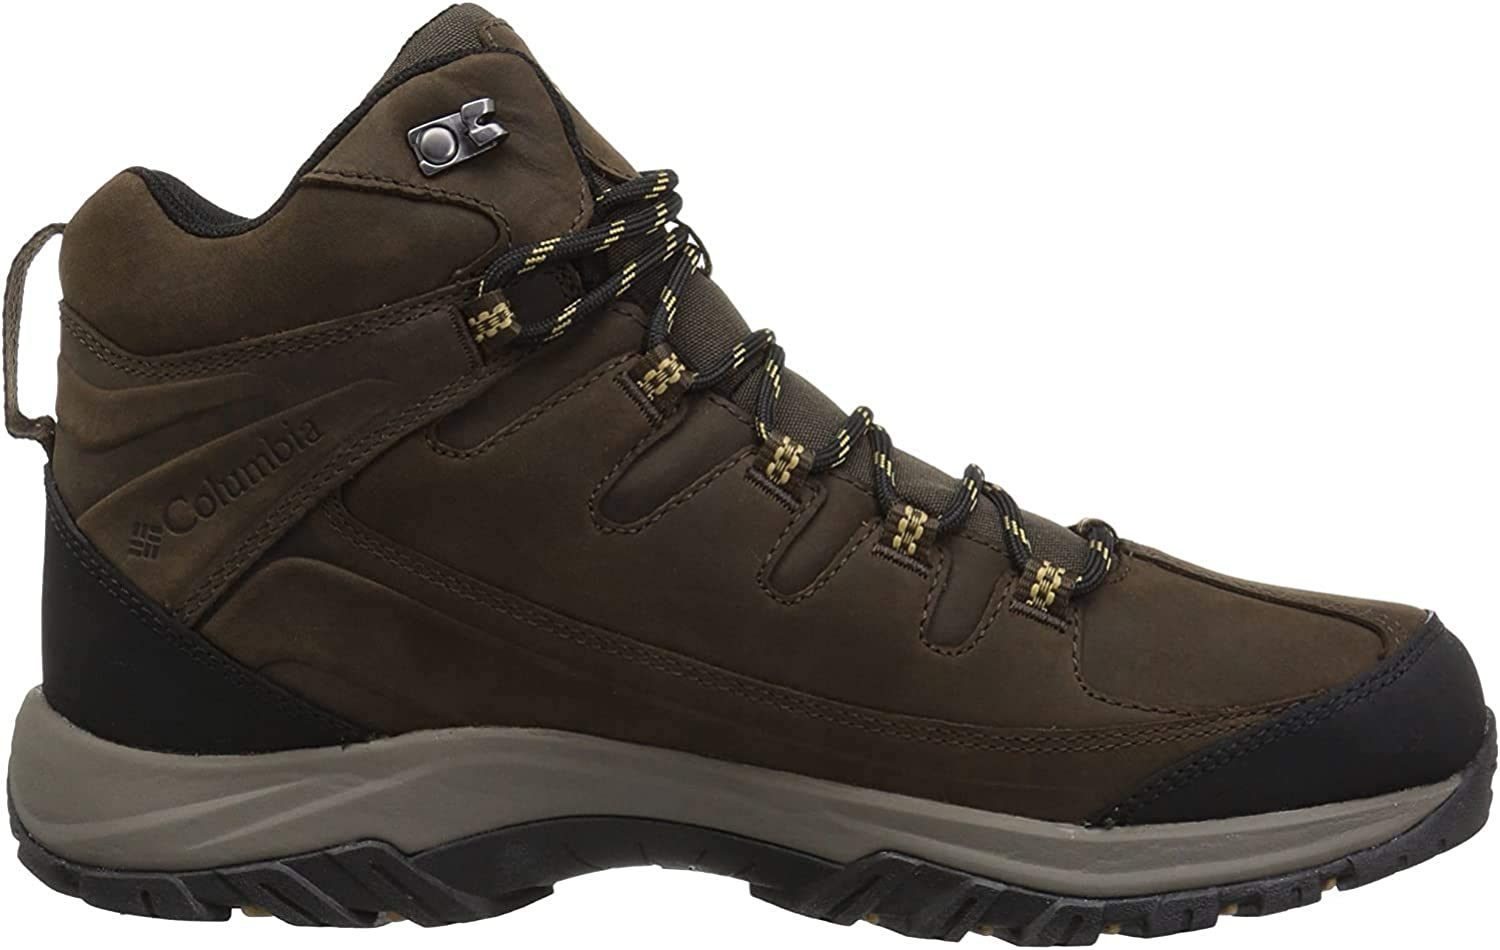 Columbia Men's Terrebonne II Mid Outdry